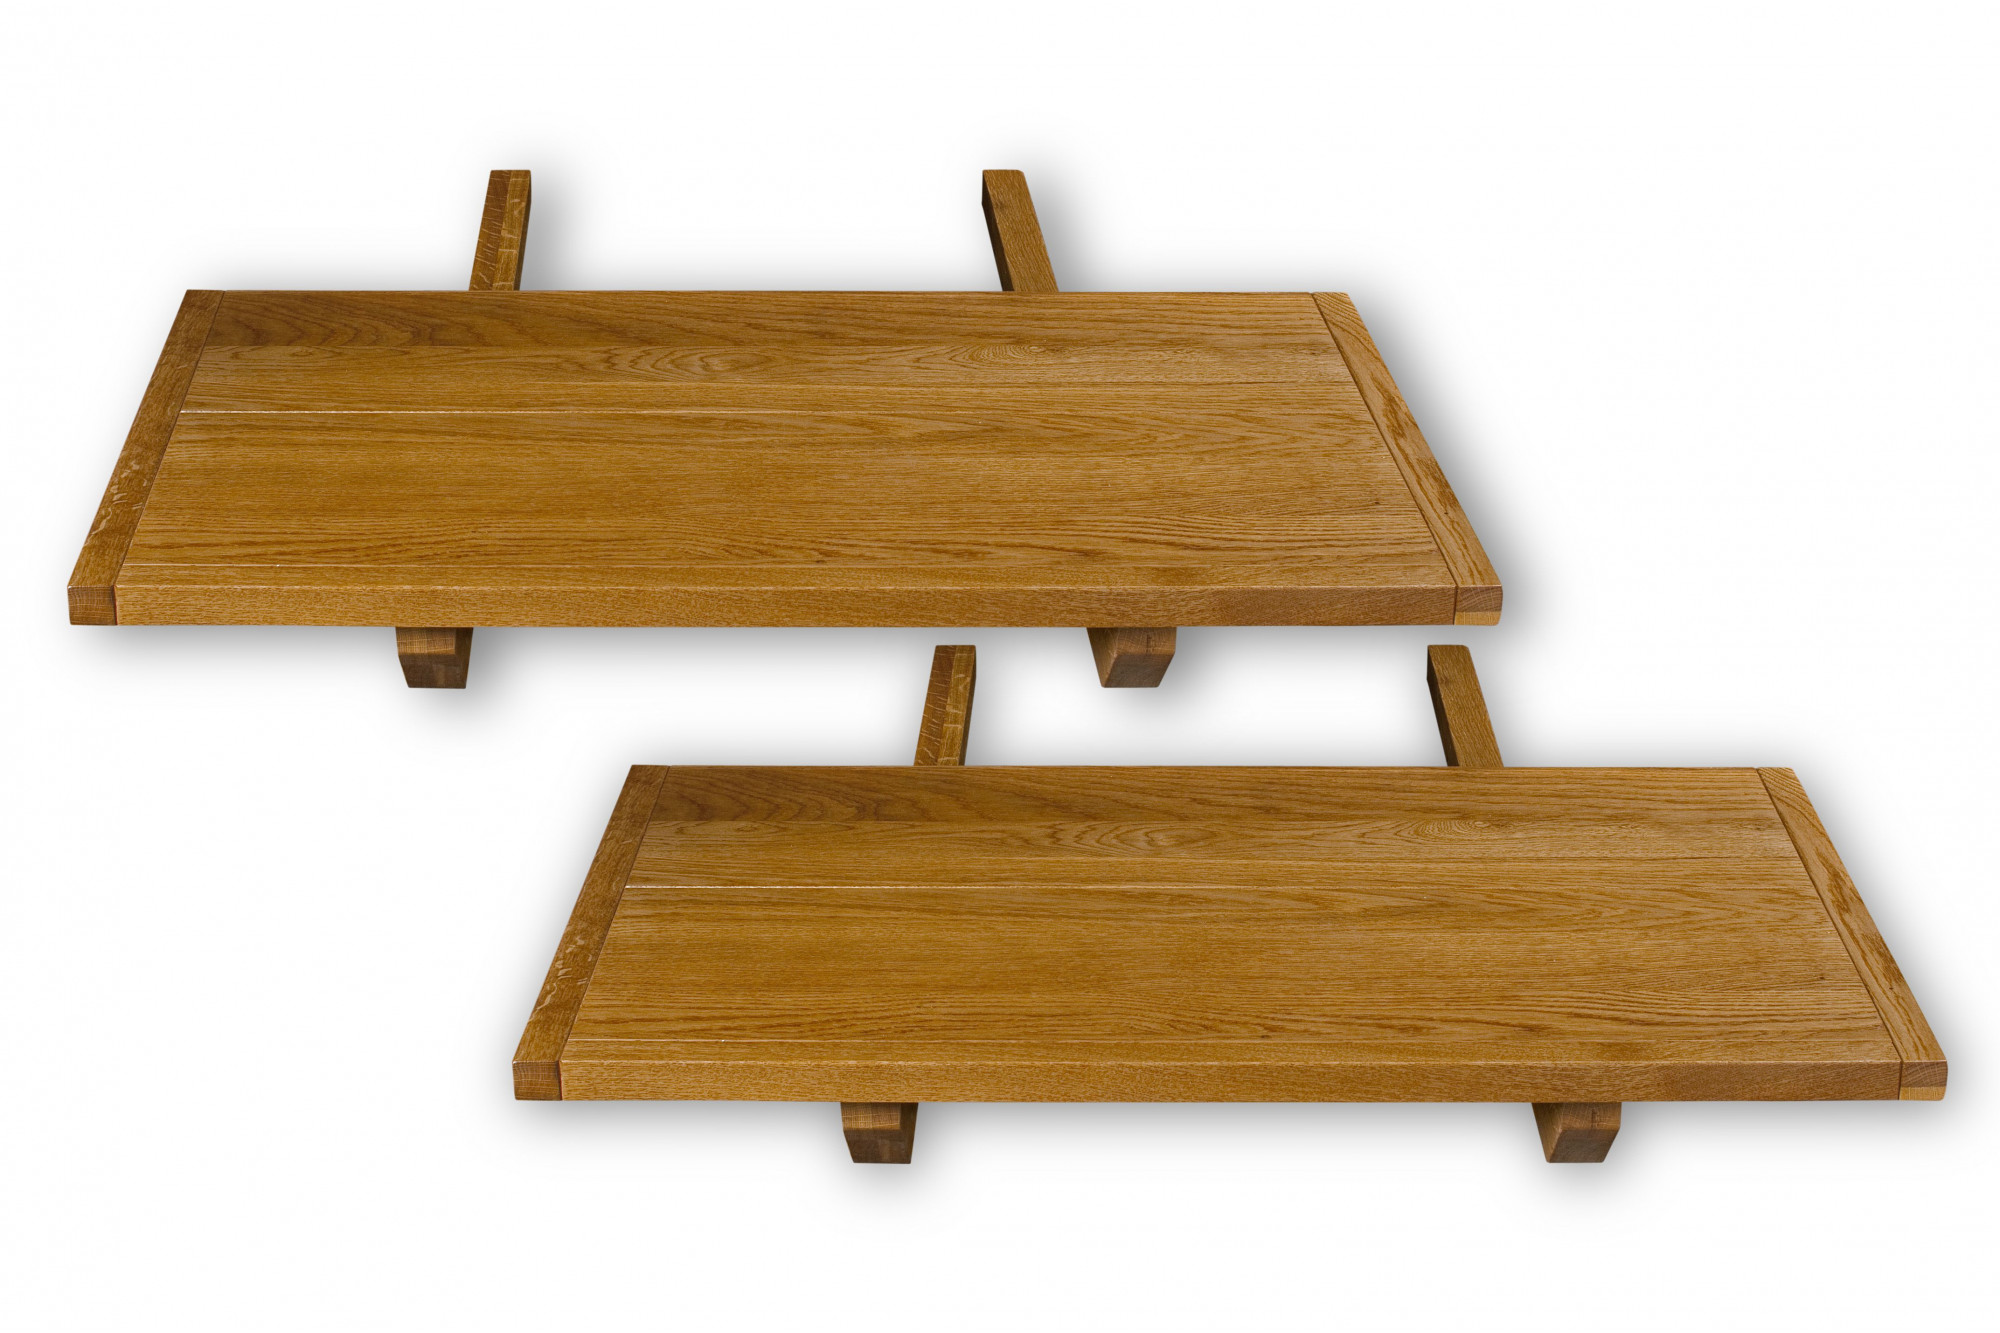 lot de 2 allonges pour table en chene massif hellin